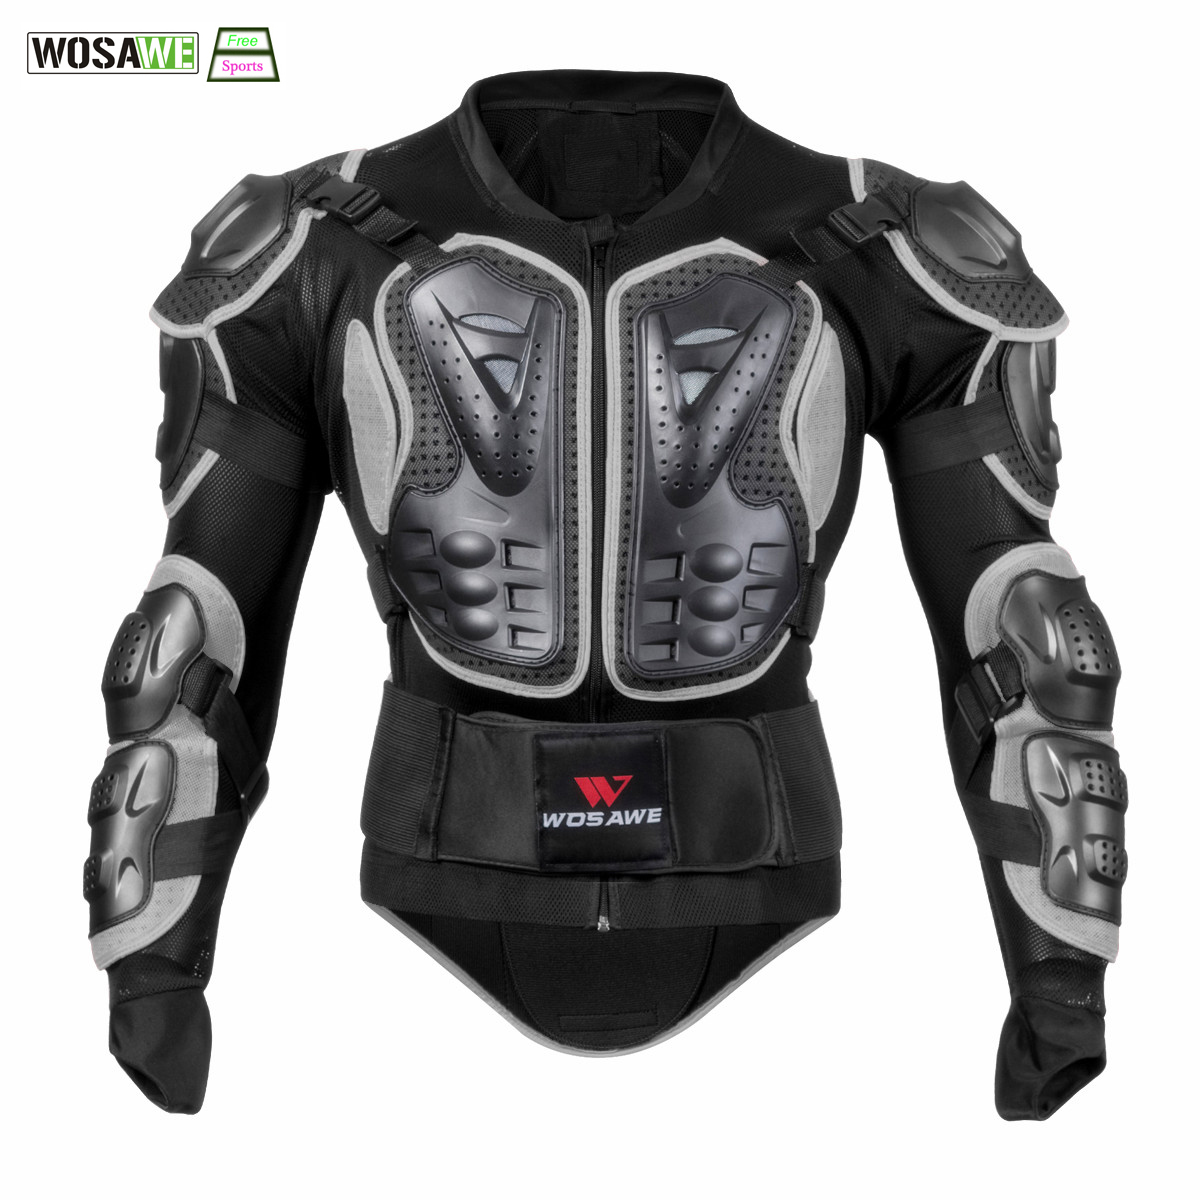 wosawe cycling armor jacket body protection motorcycle turtle jacket racing cycle moto cross. Black Bedroom Furniture Sets. Home Design Ideas